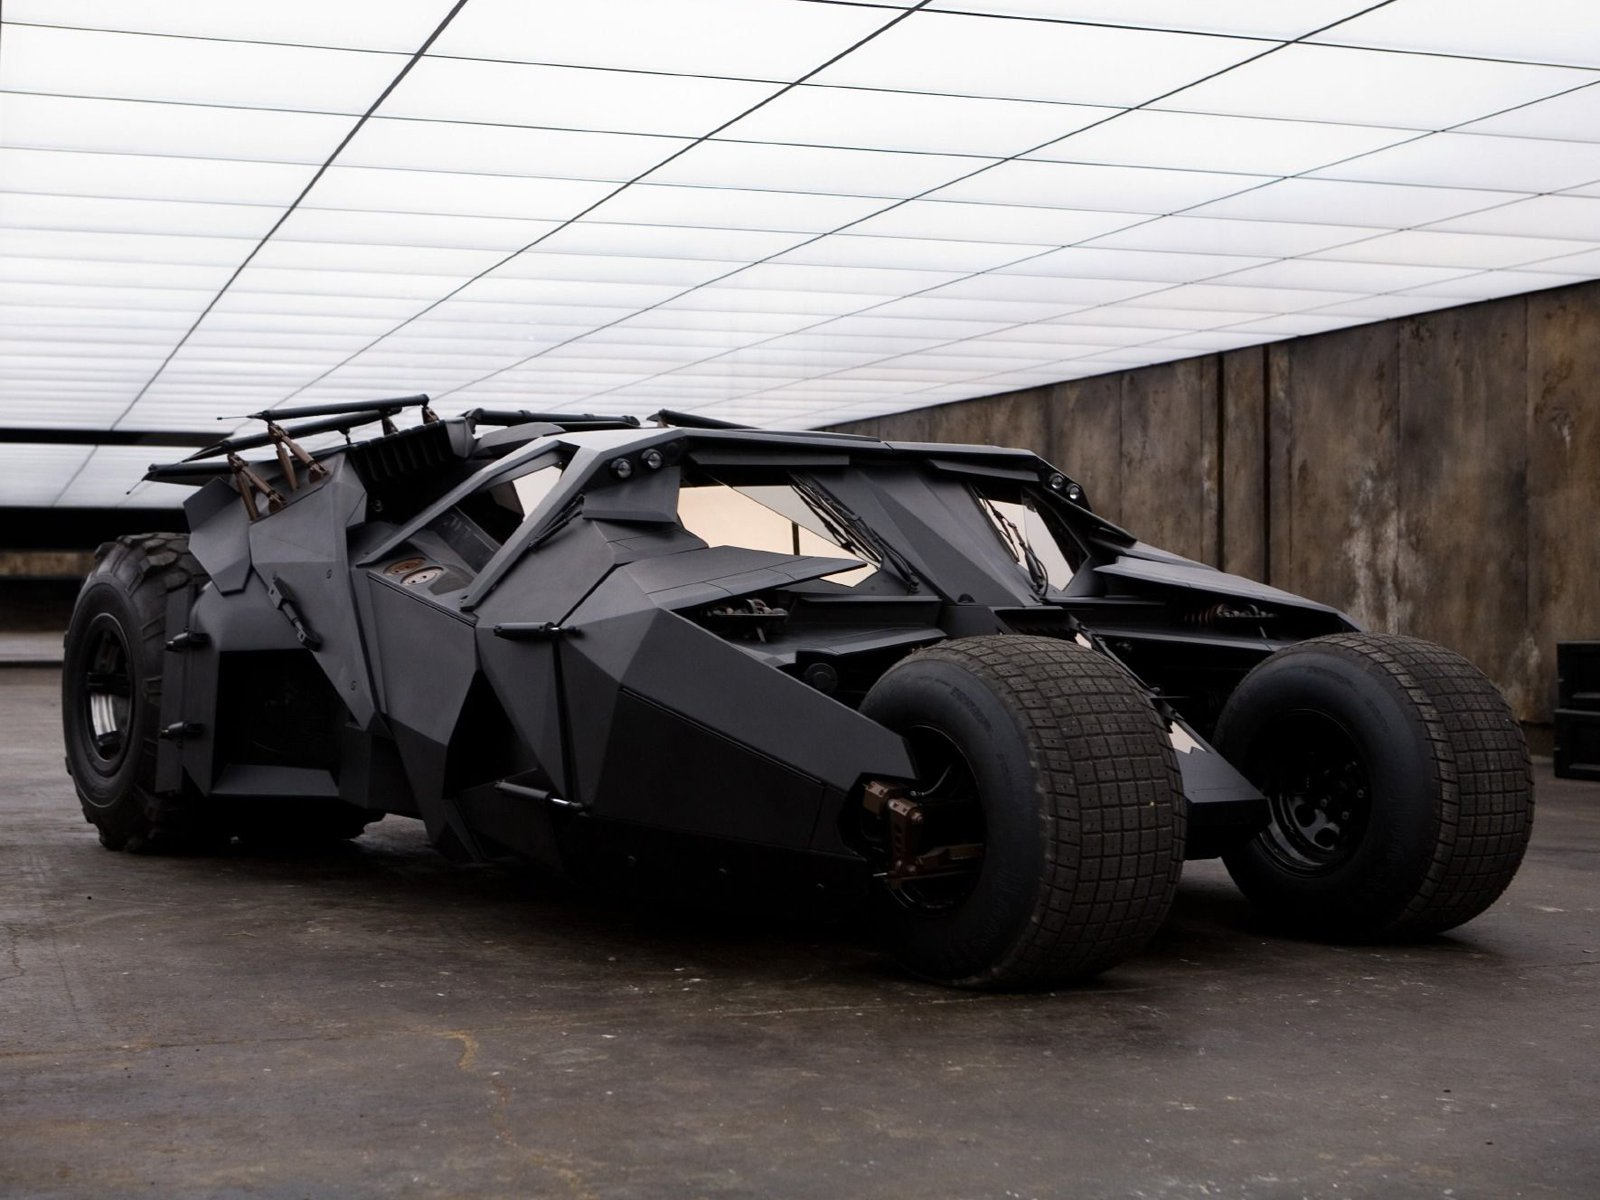 Middle East News: UAE: Batman's Tumbler Batmobile replica for sale in Dubai for $1M!